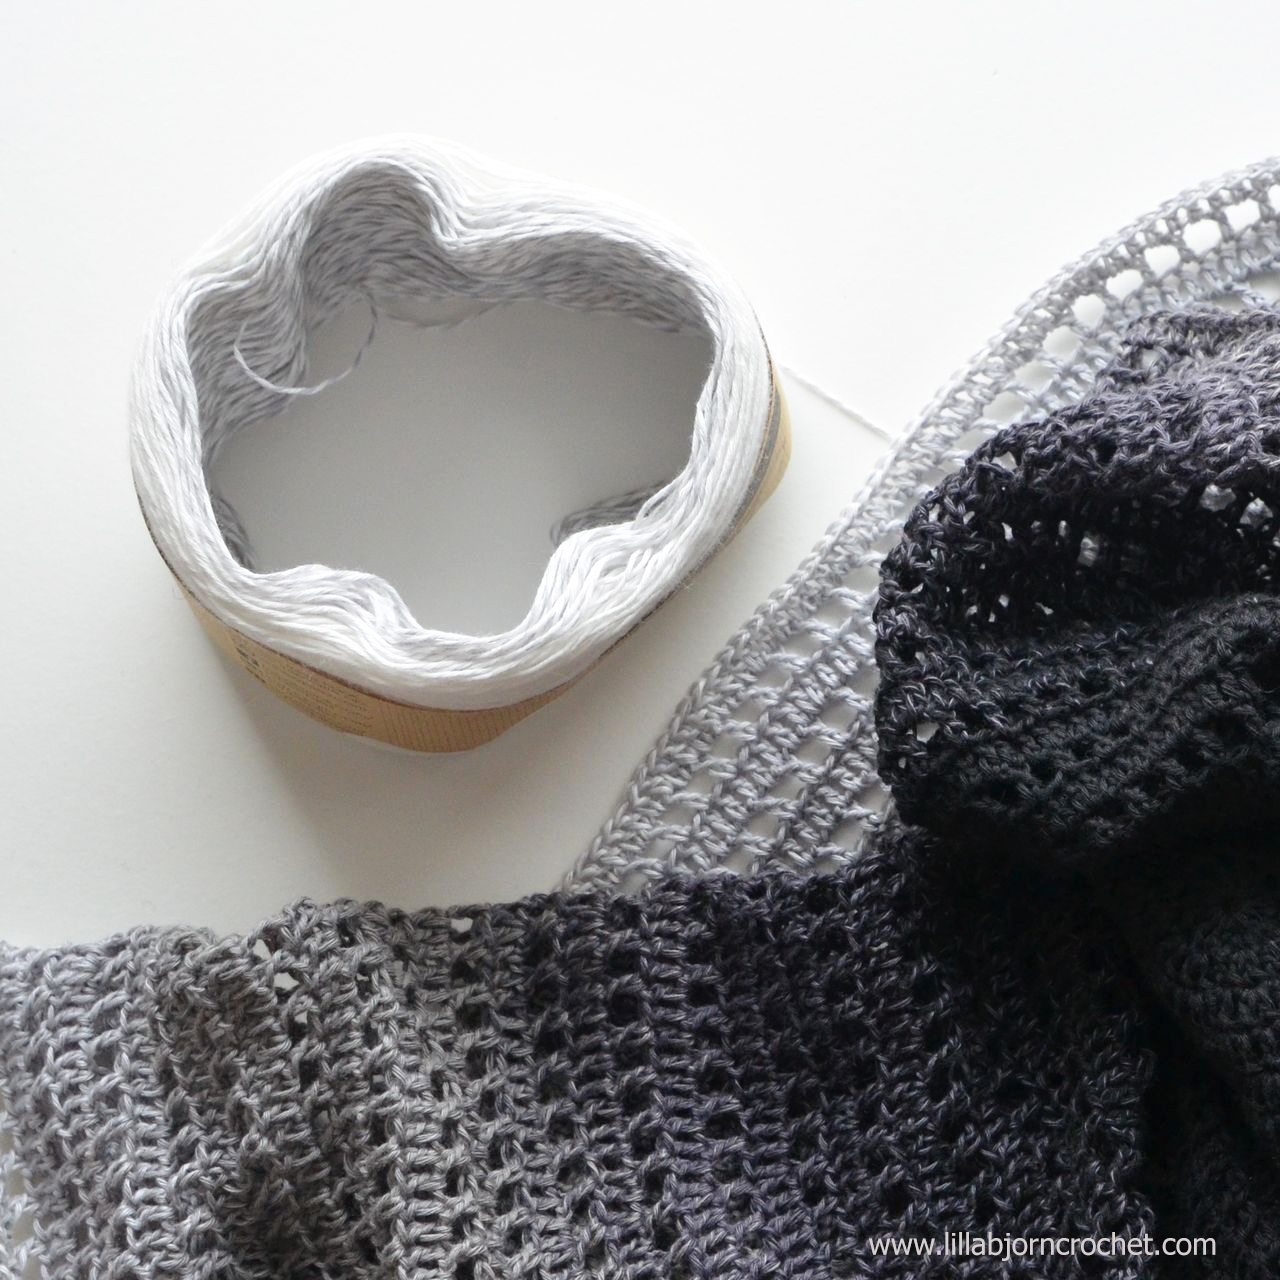 Whirl is a new yummy yarn by Scheepjes. Inspired by flavours of ice cream it comes in 12 gorgeous and soft gradient shades. Yarn review by Lilla Bjorn Crochet